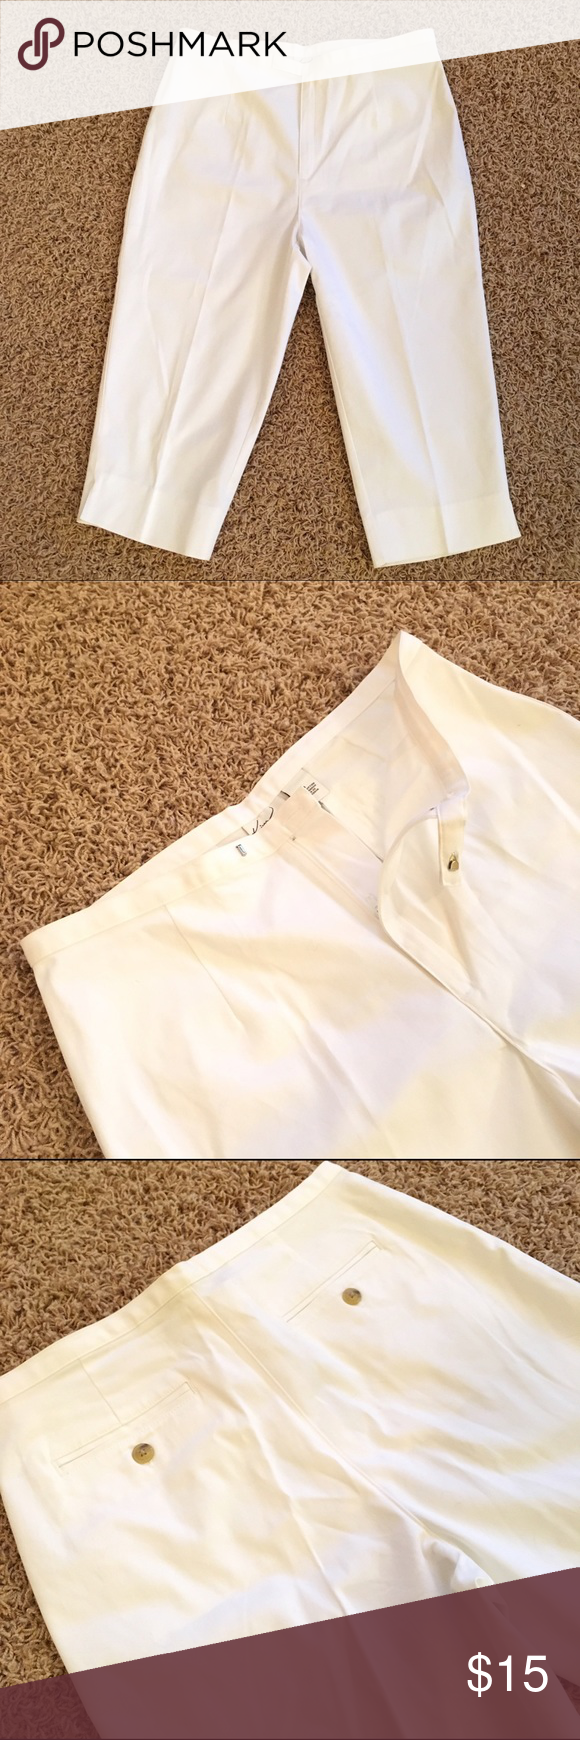 """White Capri Pants. Size 8. White Size 8 Capri Pants by Kim Rogers. Excellent Condition. 97% Cotton, 3% Spandex. **Approximate measurements: 28.25 inches from top of pant to bottom of pant. Bottom of pant opening has a 2"""" slit and is 7.5 inches wide, waist is 15.5 inches side to side, widest part of hip is 20"""". Classic Summer Capri. Request a Bundle w other items and I will create for you. Thank you! Kim Rogers Pants Capris"""